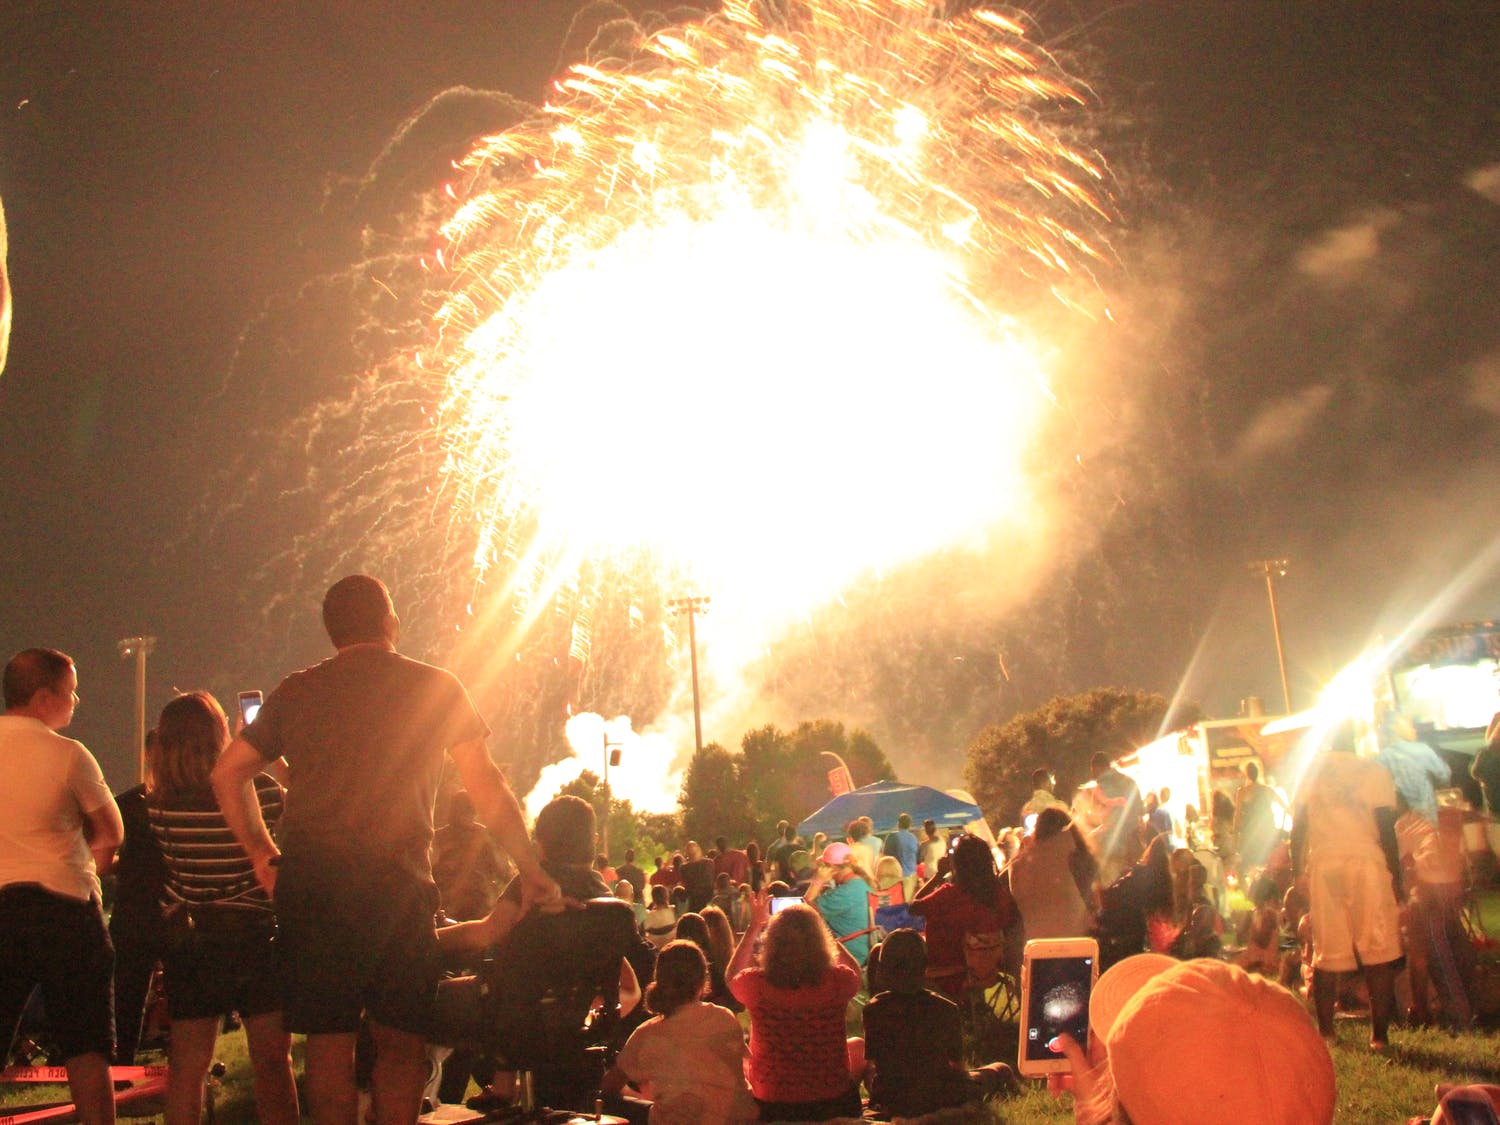 Spectators watch the fireworks display at the end of the Fanfare and Fireworks 2018 event at Flavet Field.